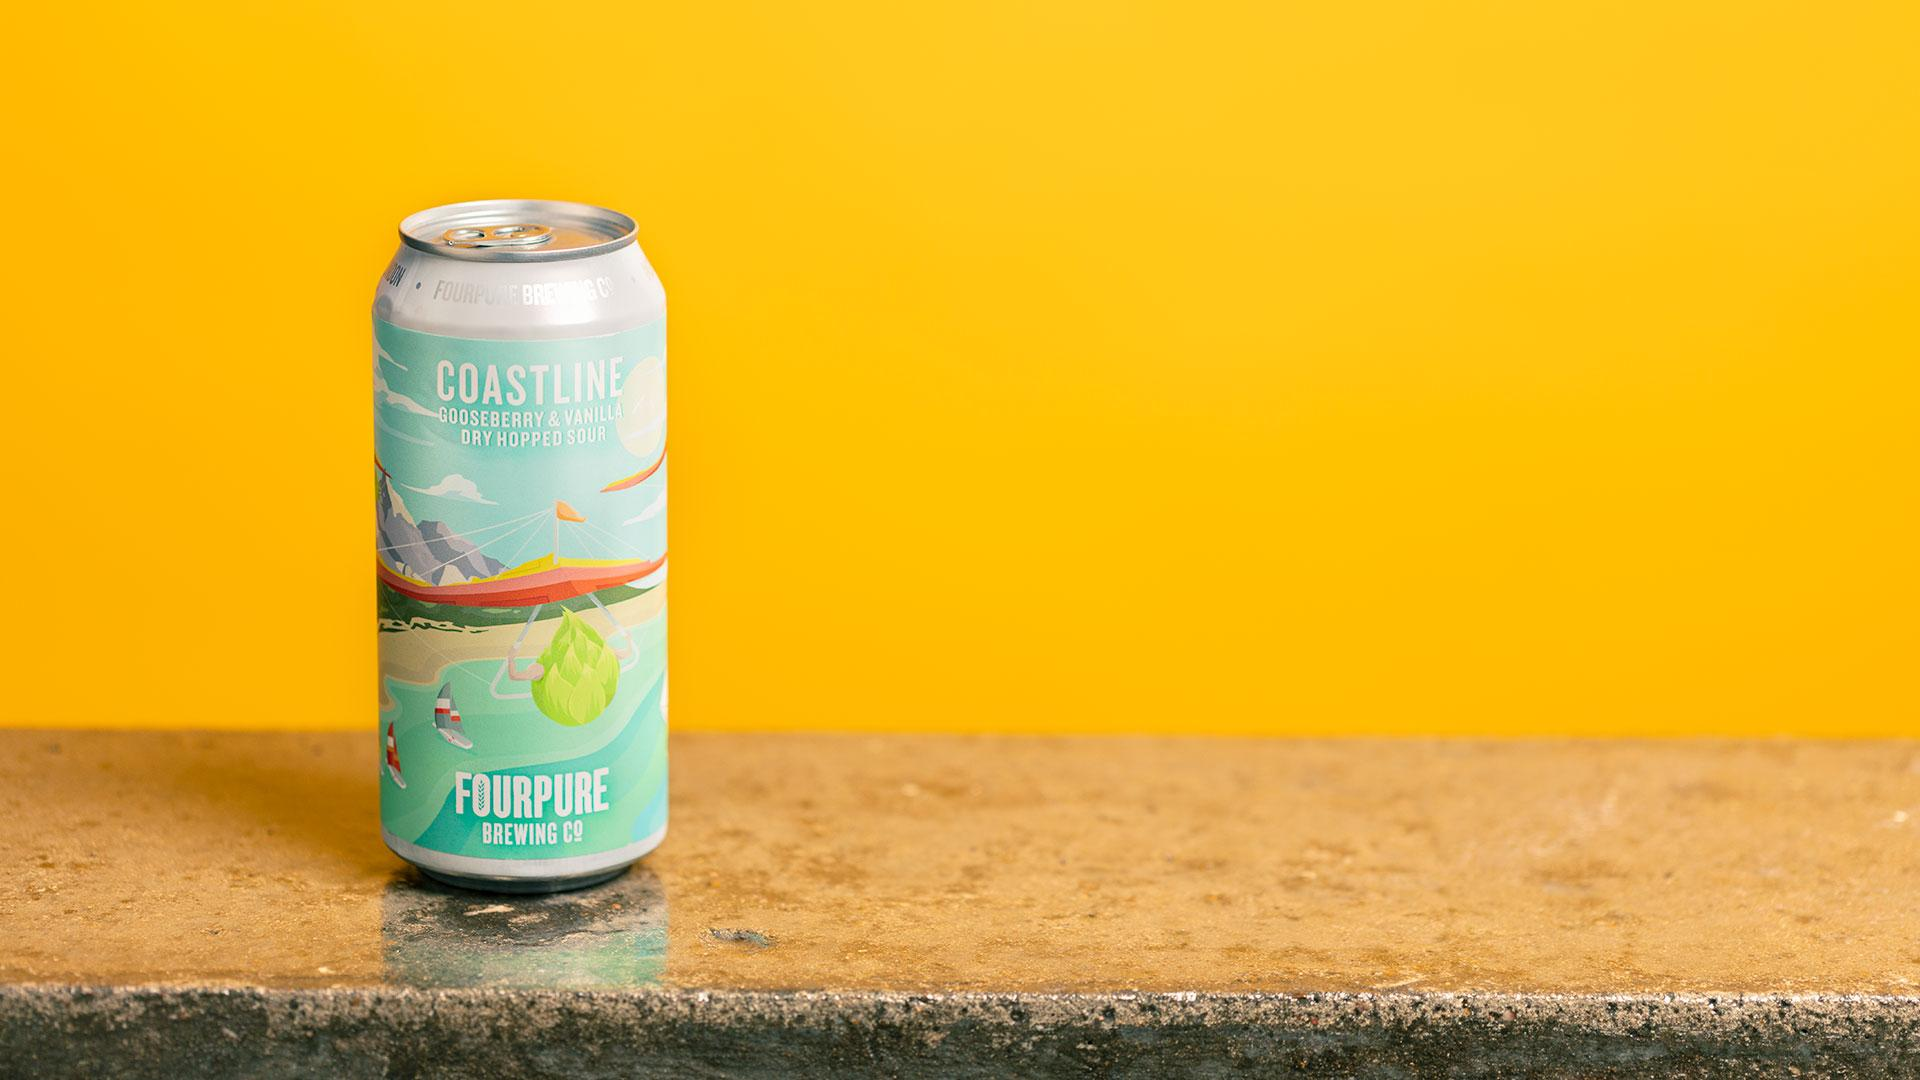 Tesco craft beer: Fourpure Coastline Gooseberry & Vanilla Dry Hopped Sour